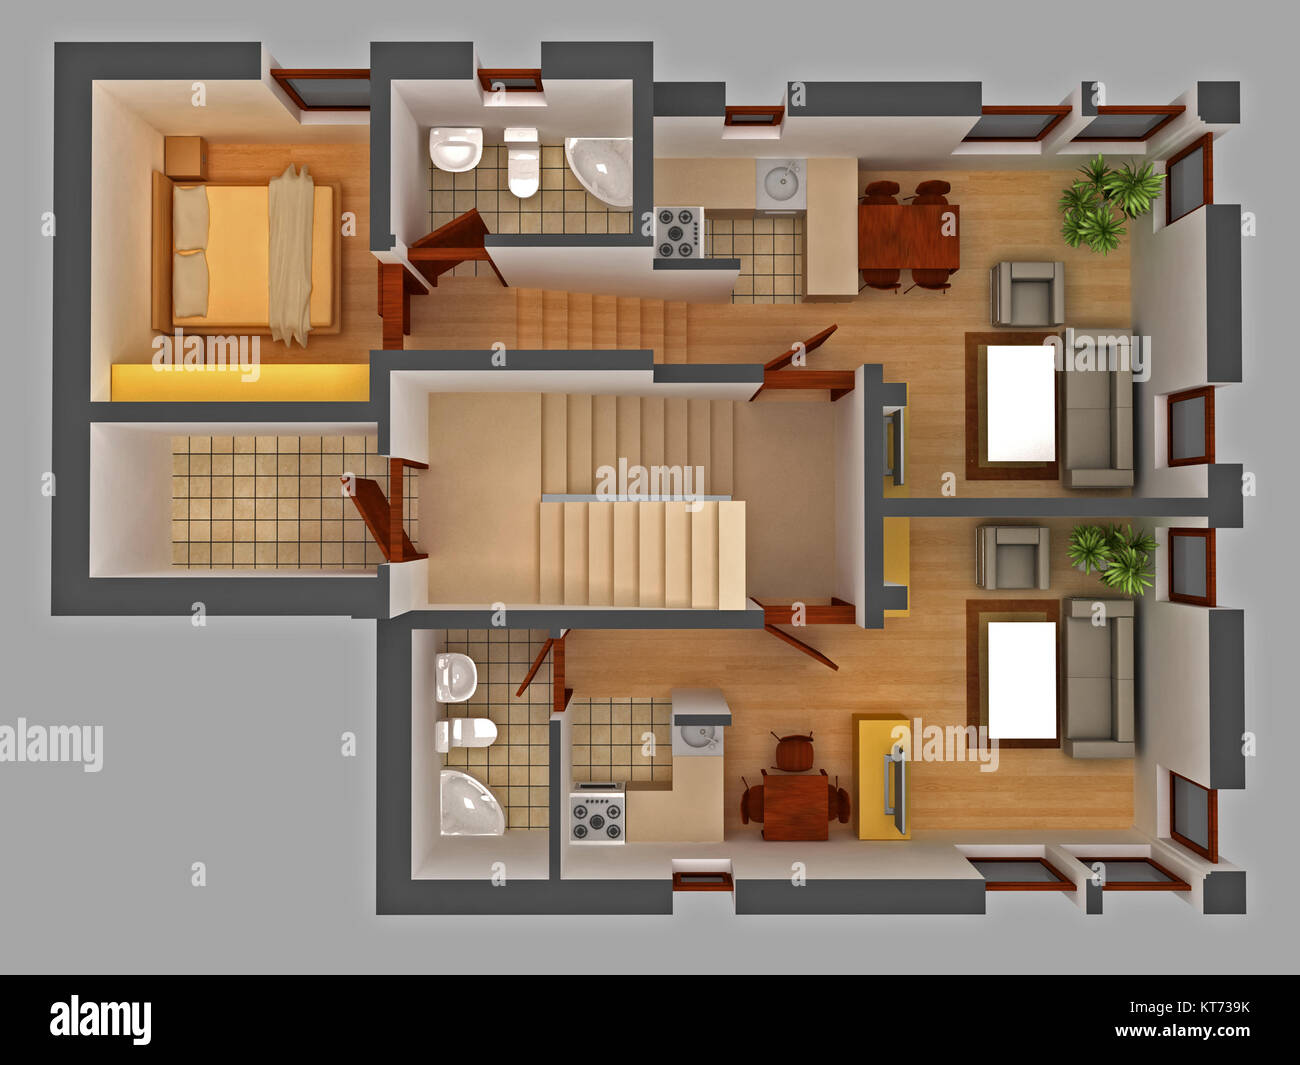 Apartment floor plan - Stock Image